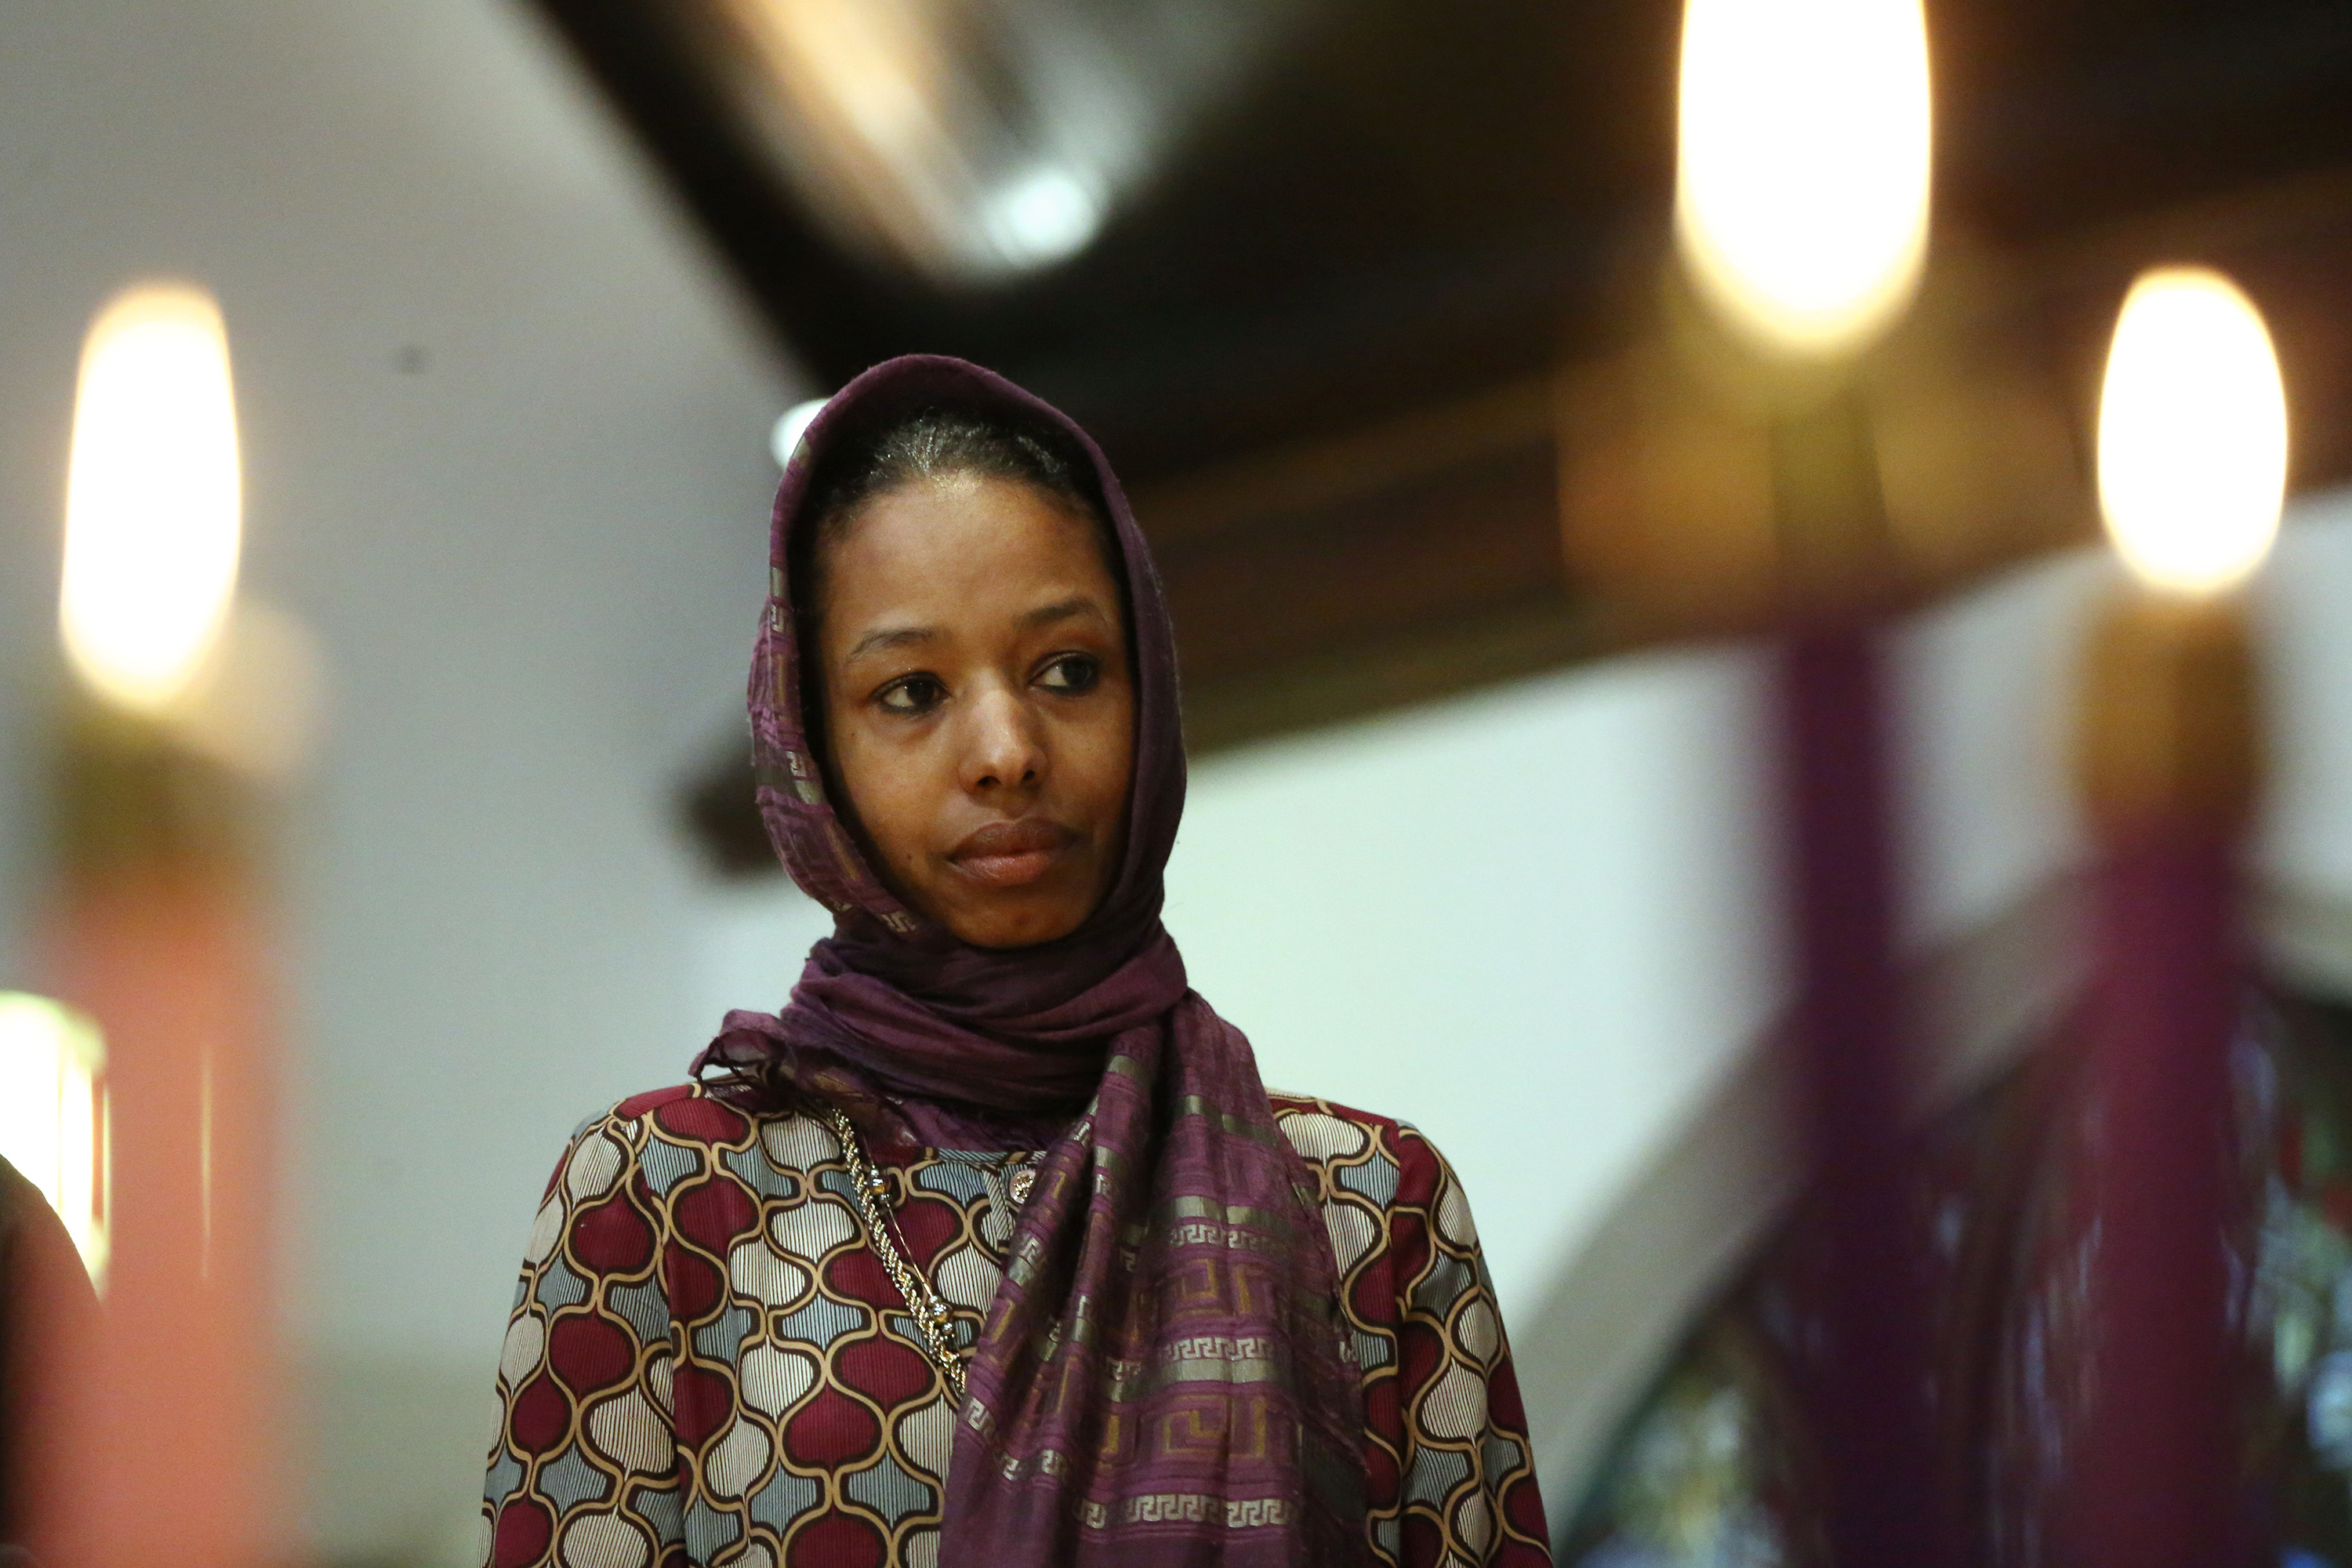 Larycia Hawkins, a Christian who is wearing a hijab over Advent in solidarity with Muslims, attends service at St. Martin Episcopal Church in Chicago on Dec. 13, 2015.